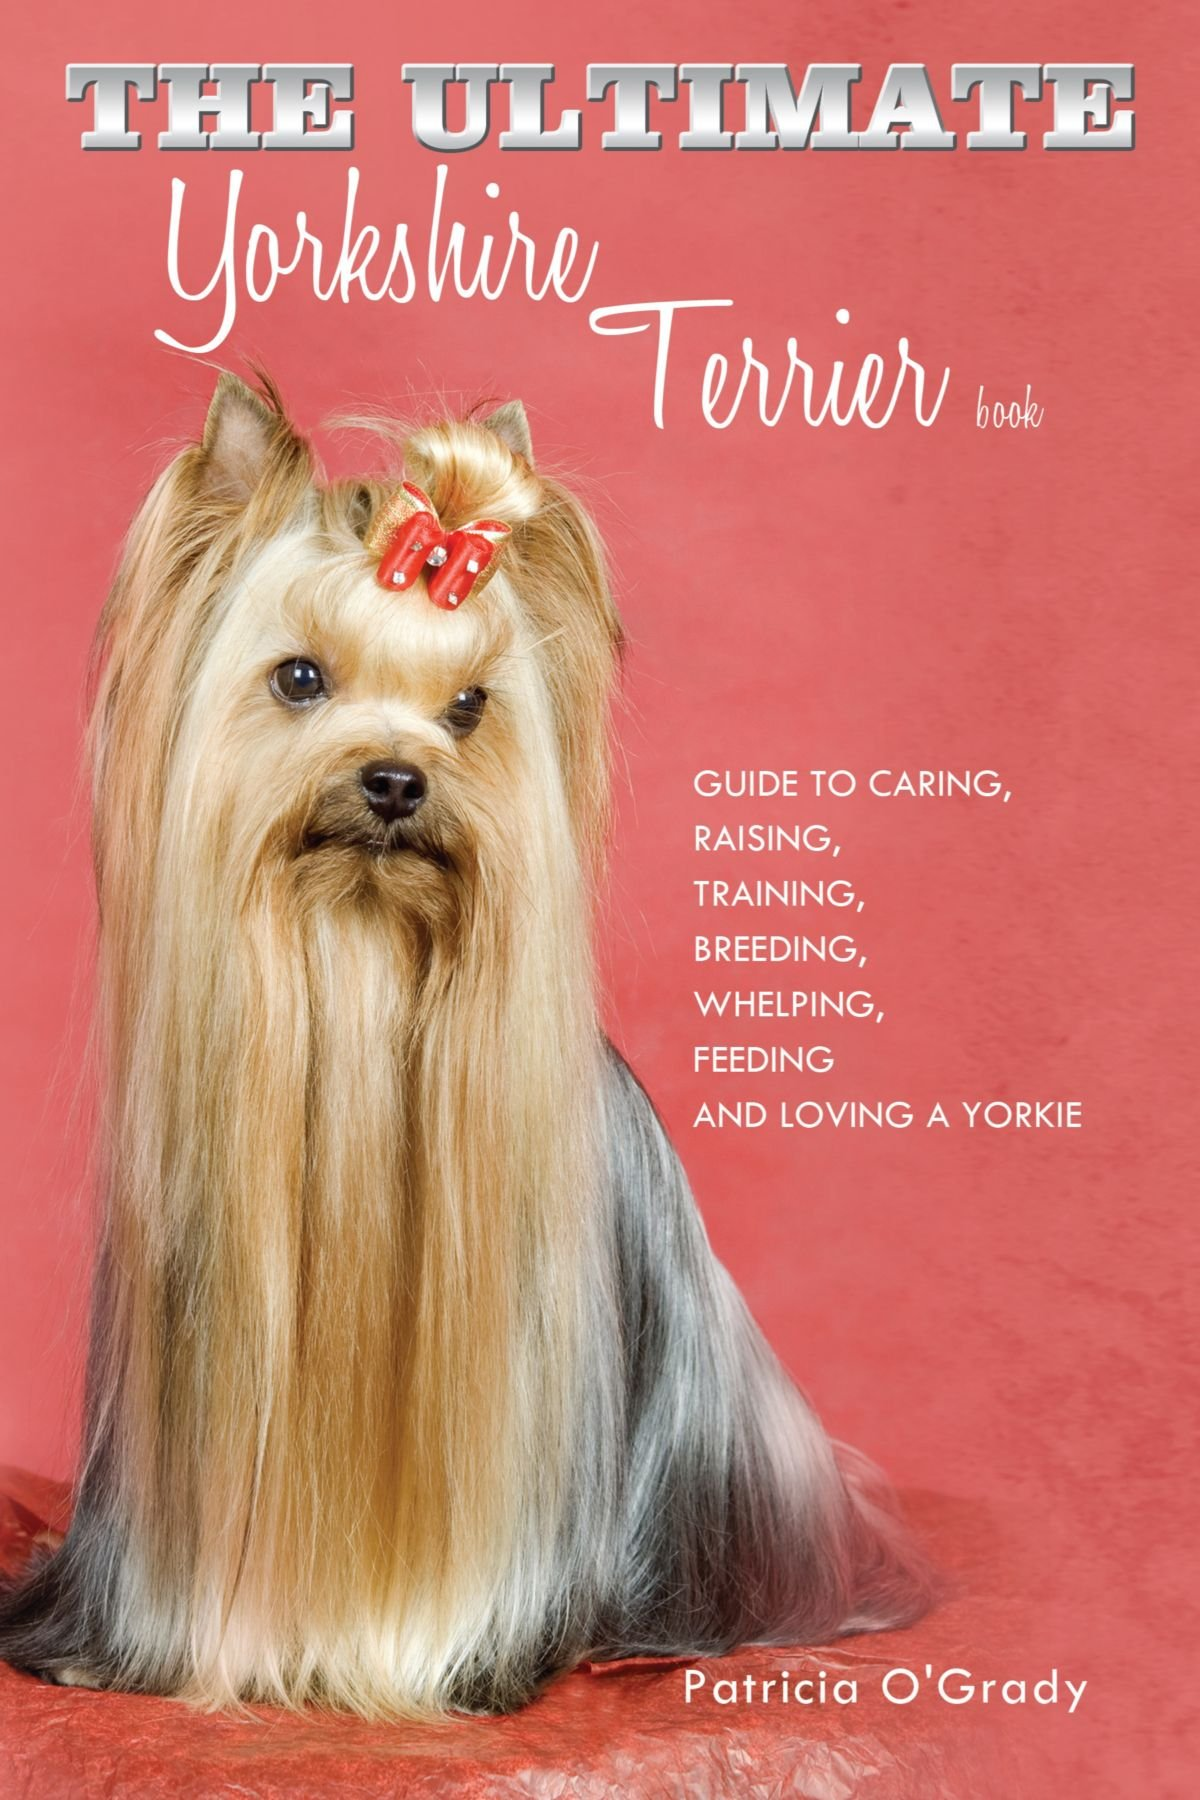 How to care for a Yorkshire terrier Yorkshire terrier - care, food, character, reviews 11